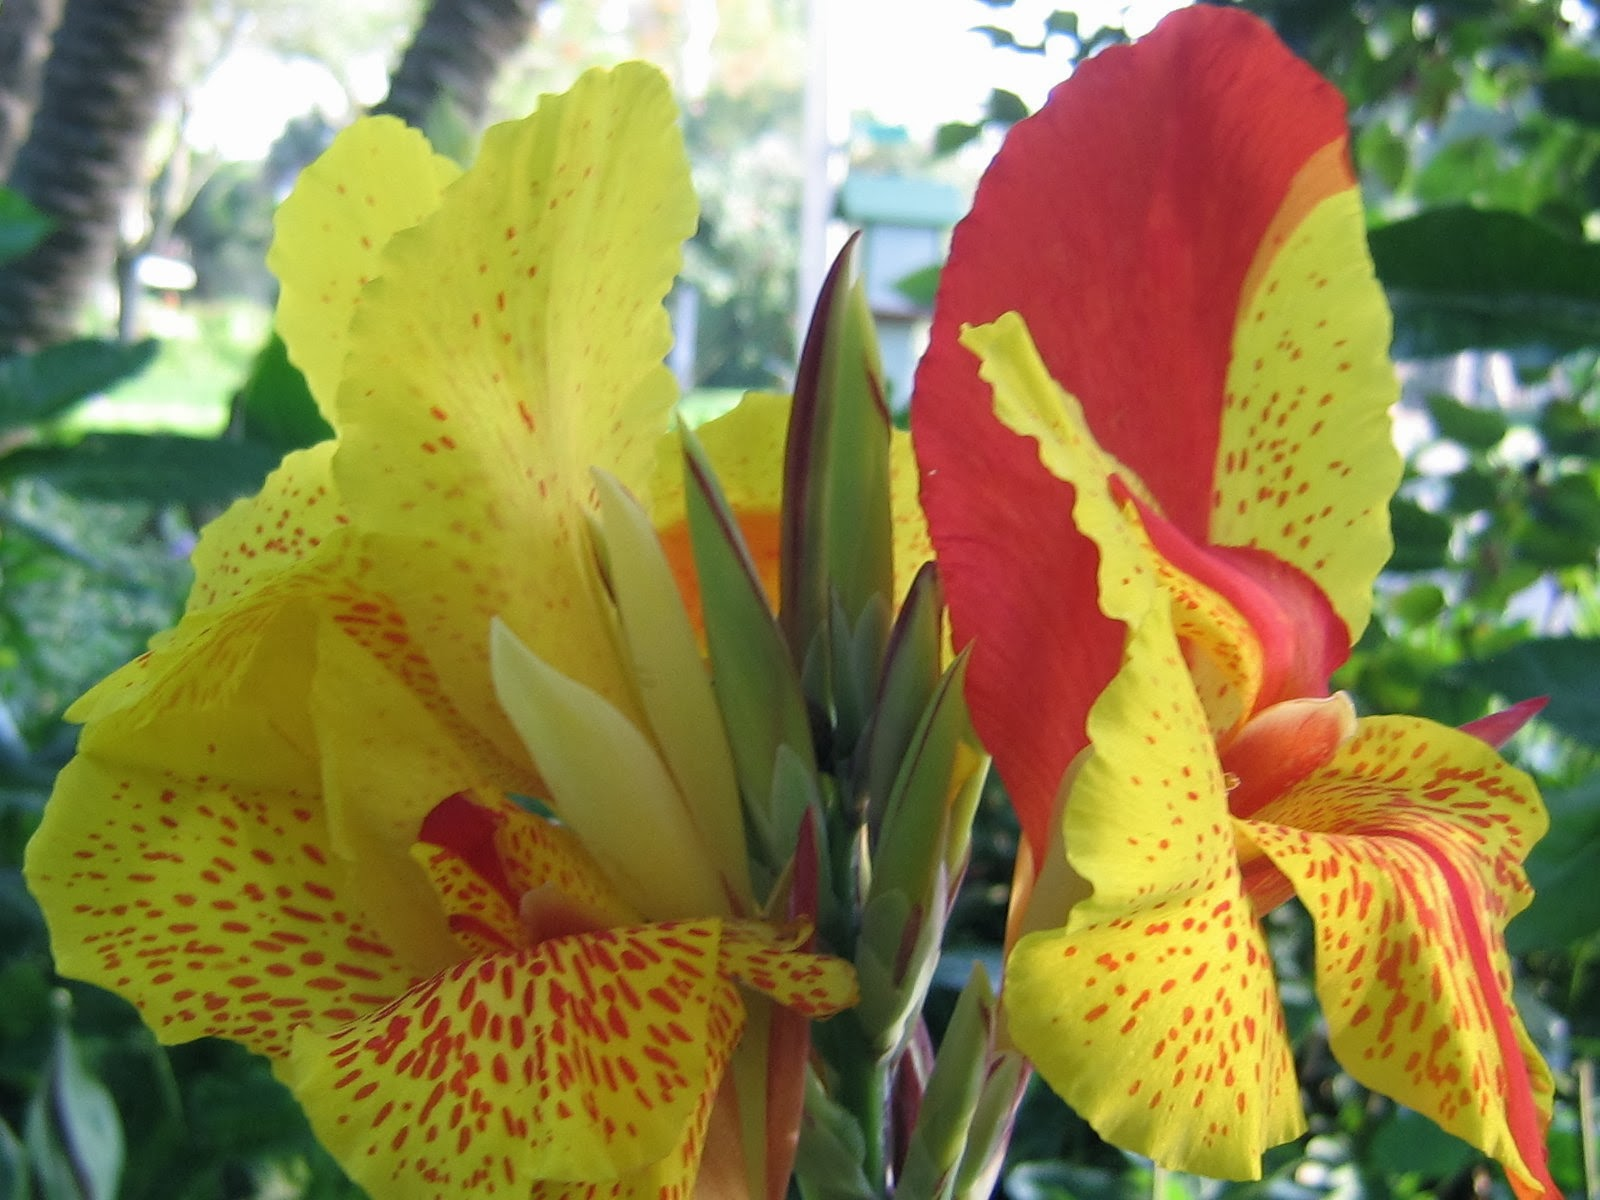 Yellow with red markings Canna lily flowers